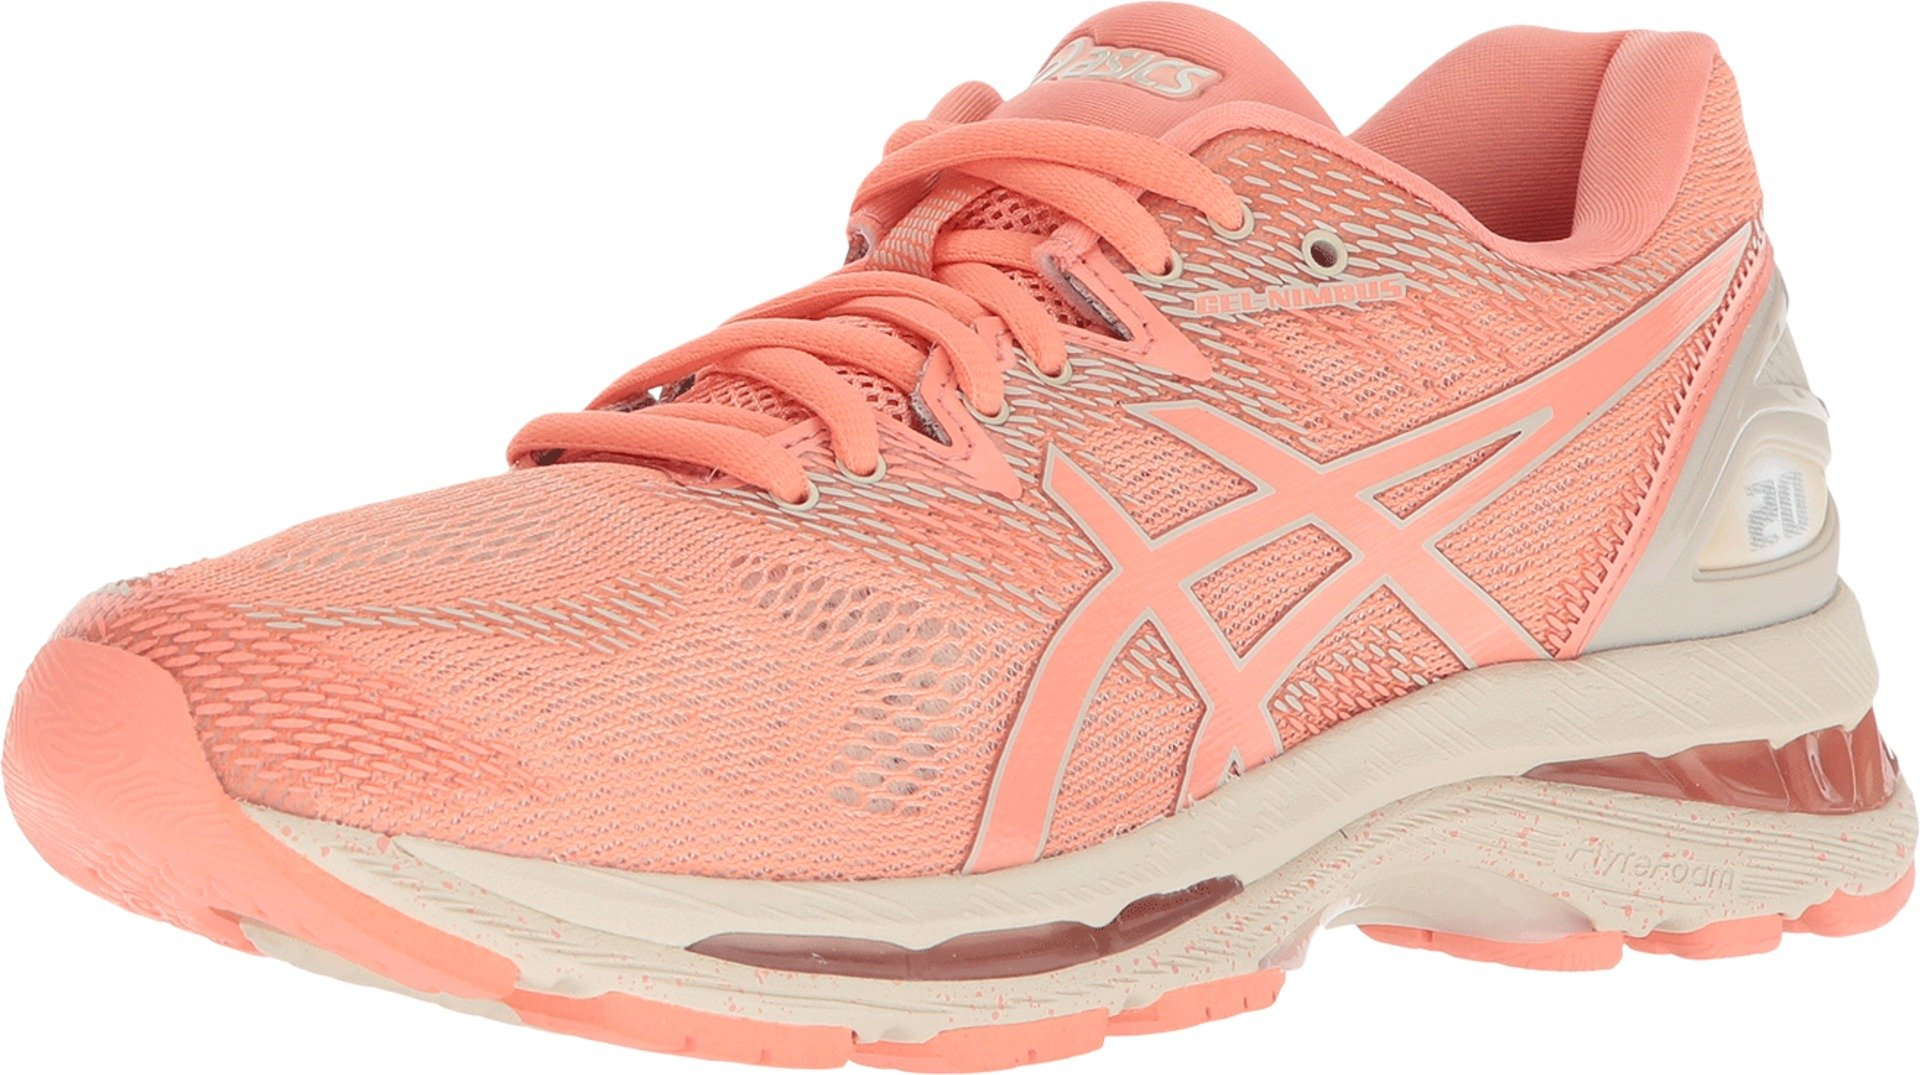 ASICS Women's Gel-Nimbus 20 Running Shoe, cherry/coffee/blossom, 6.5 Medium US by ASICS